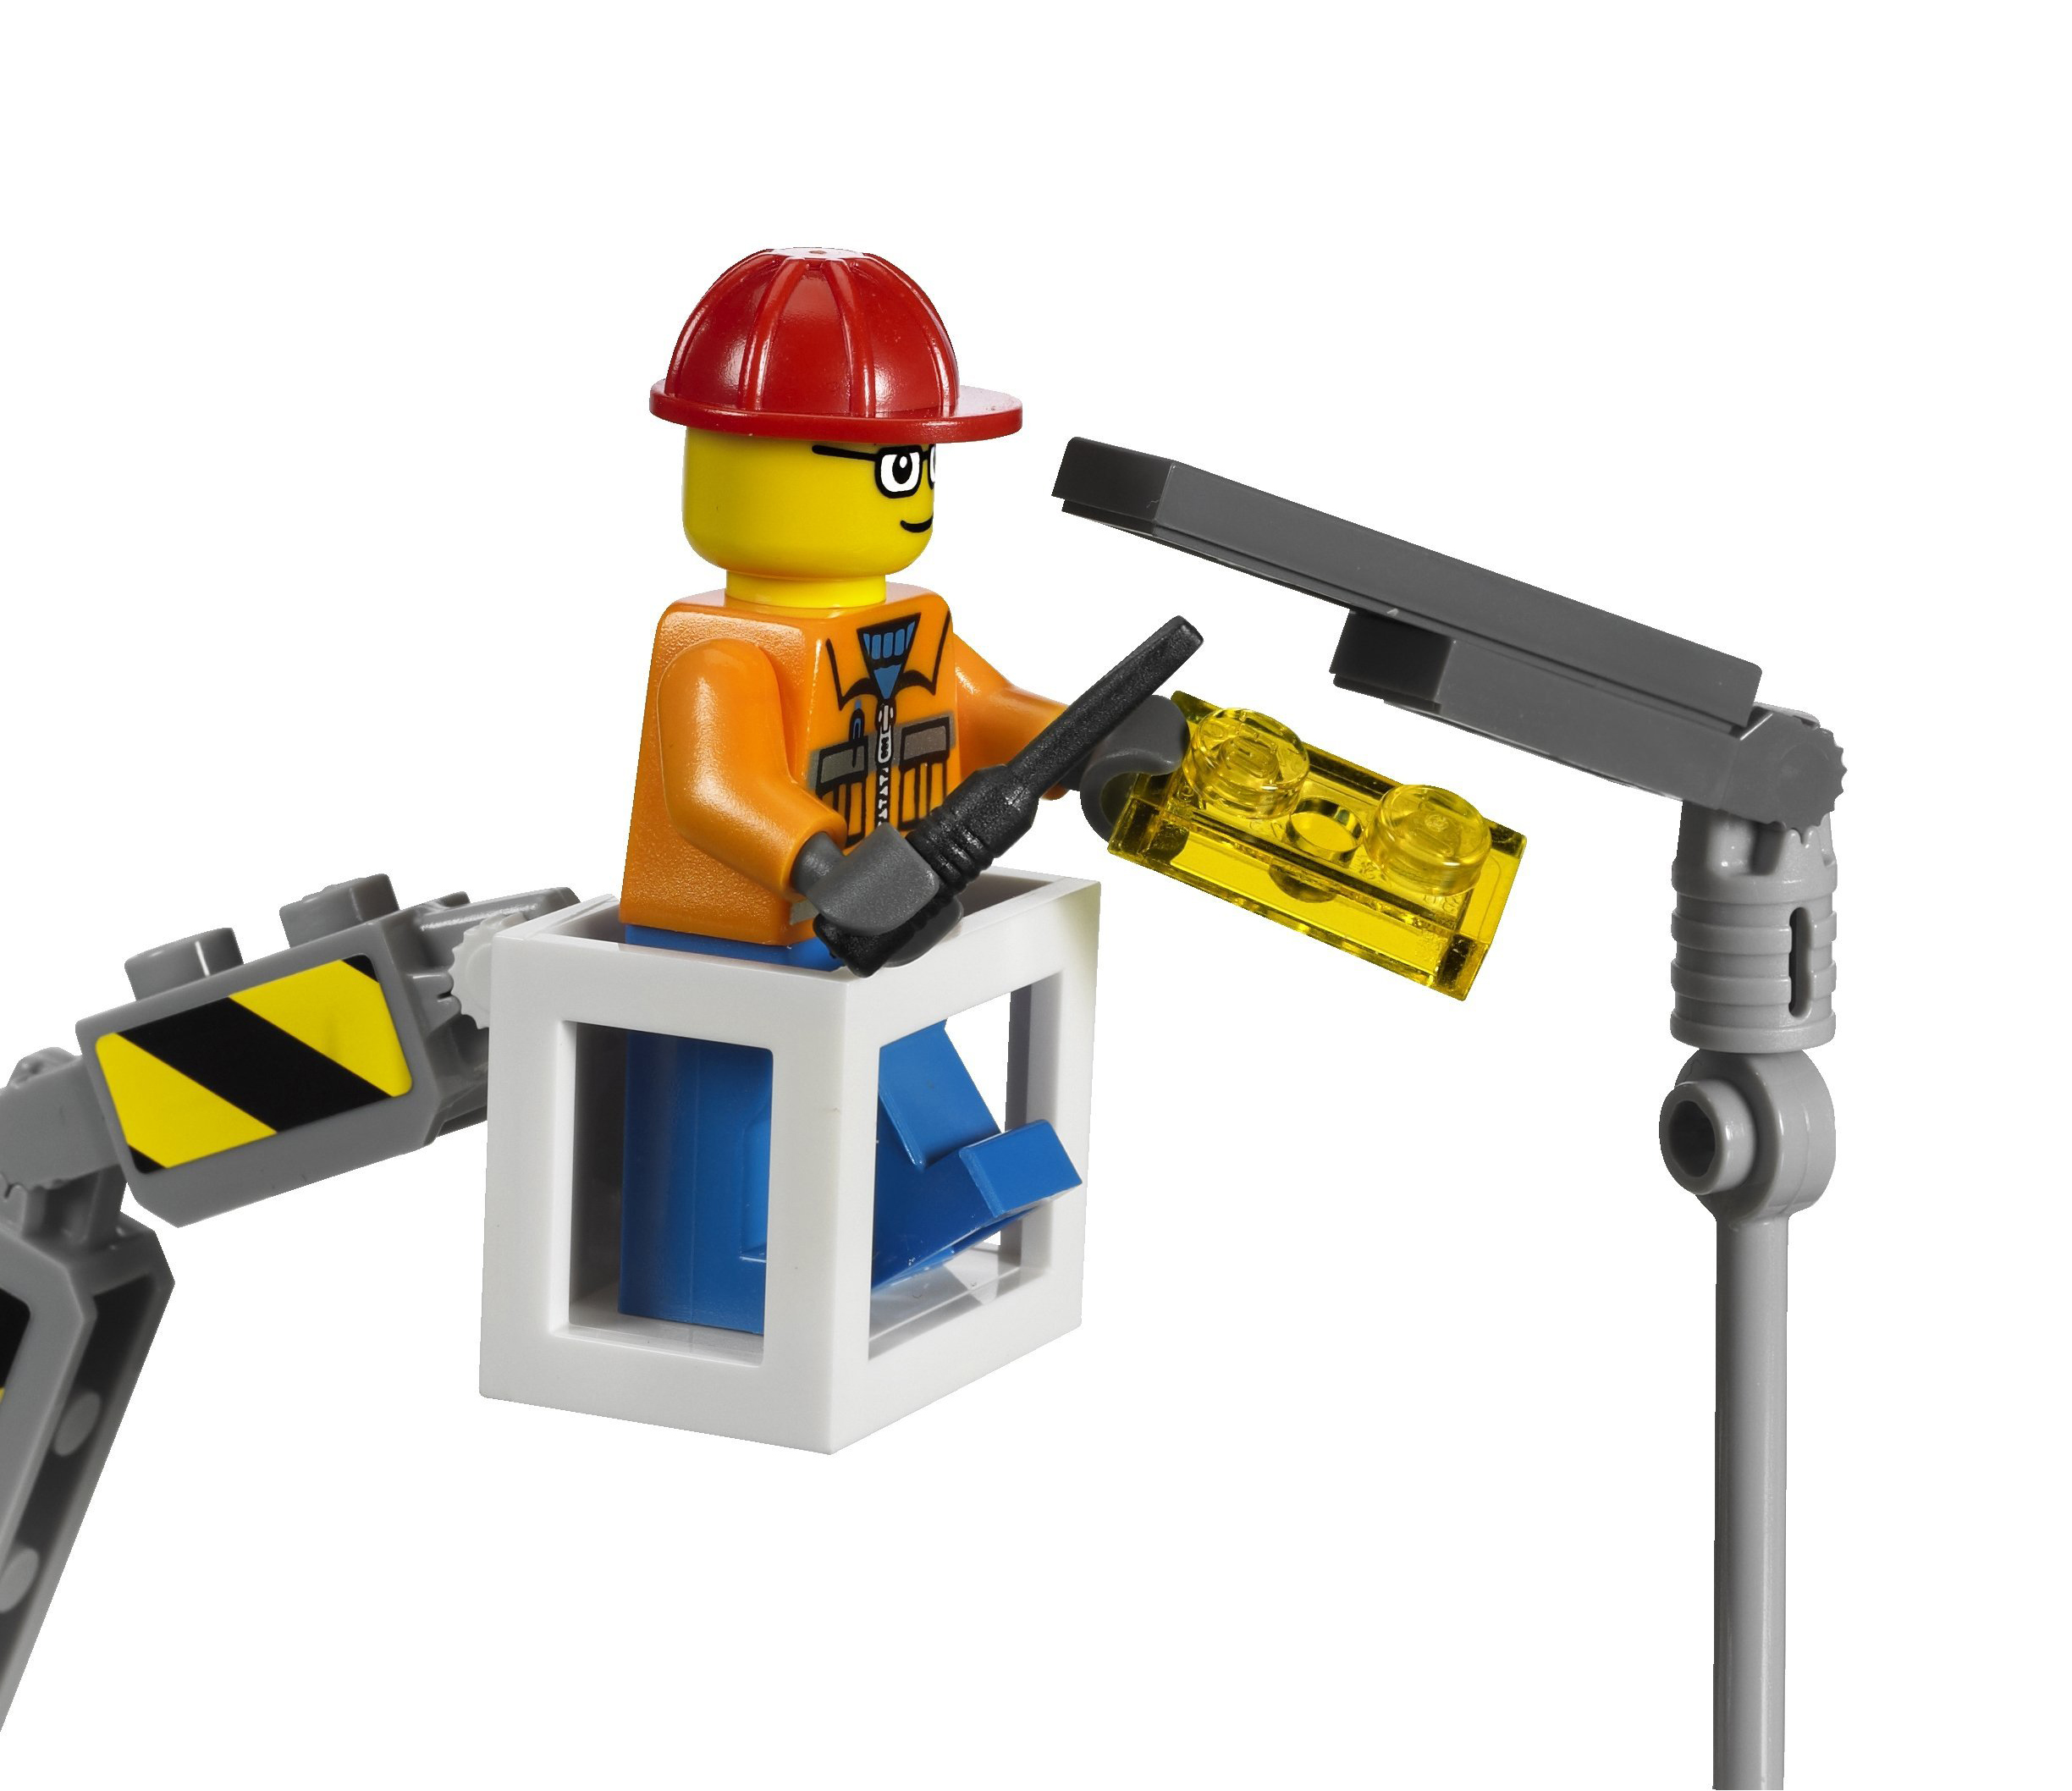 e_3179_minifigure_hr.jpg